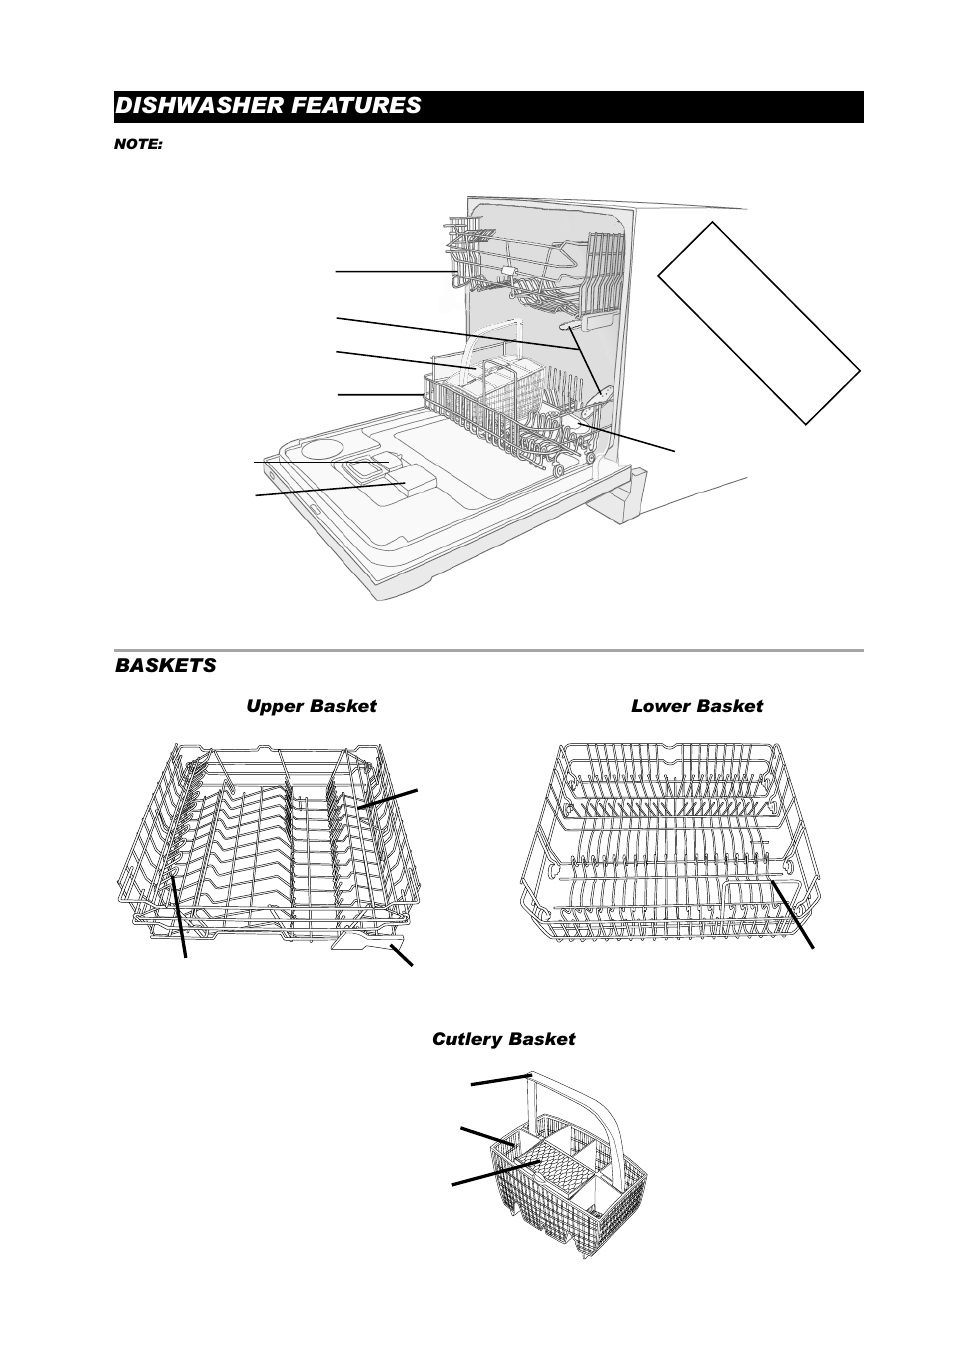 Dishwasher features, Baskets, Upper basket lower basket